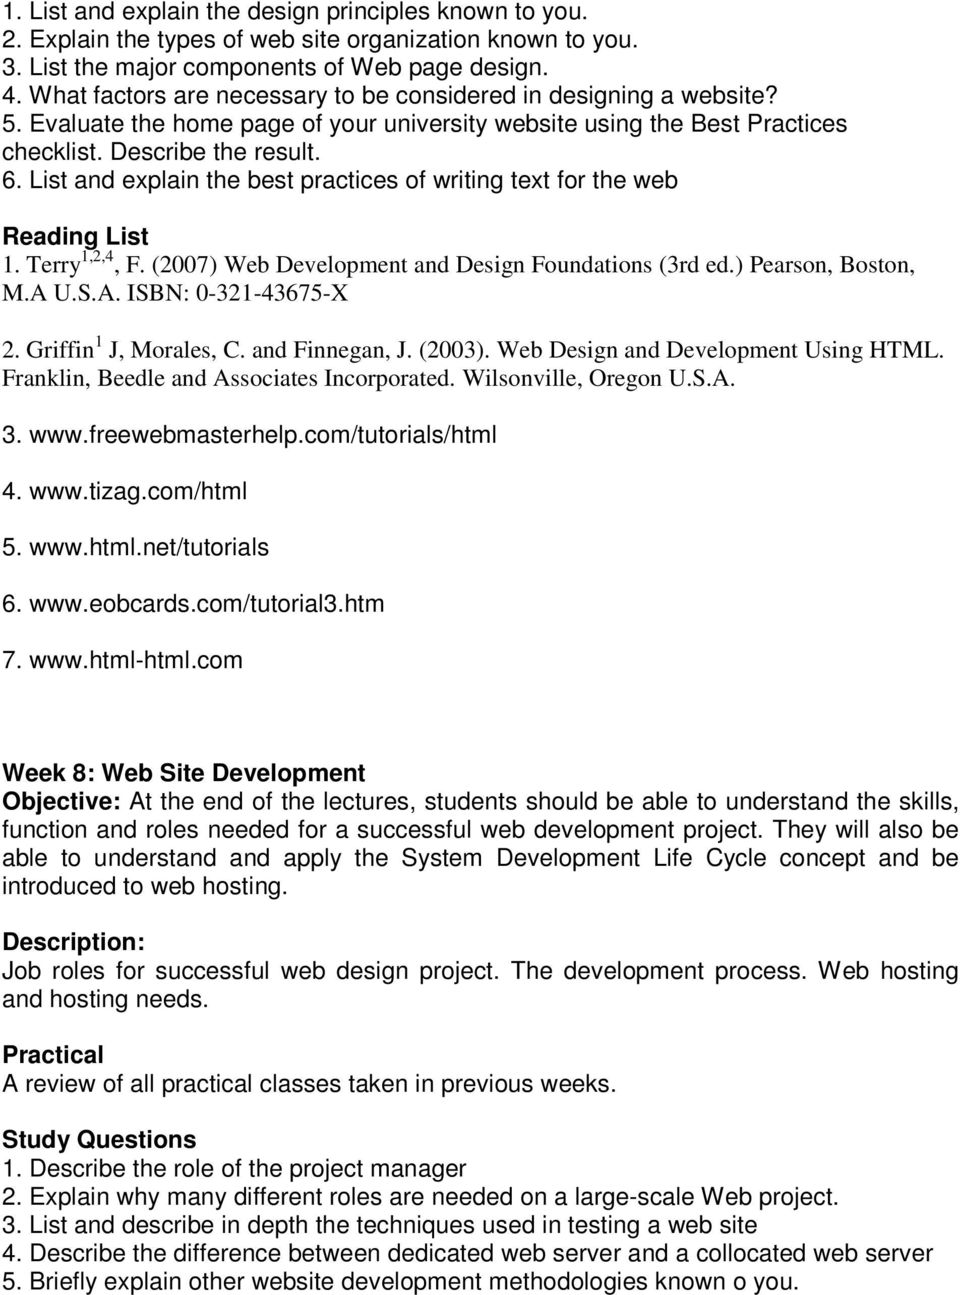 List and explain the best practices of writing text for the web 1. Terry 1,2,4, F. (2007) Web Development and Design Foundations (3rd ed.) Pearson, Boston, M.A U.S.A. ISBN: 0-321-43675-X 2.